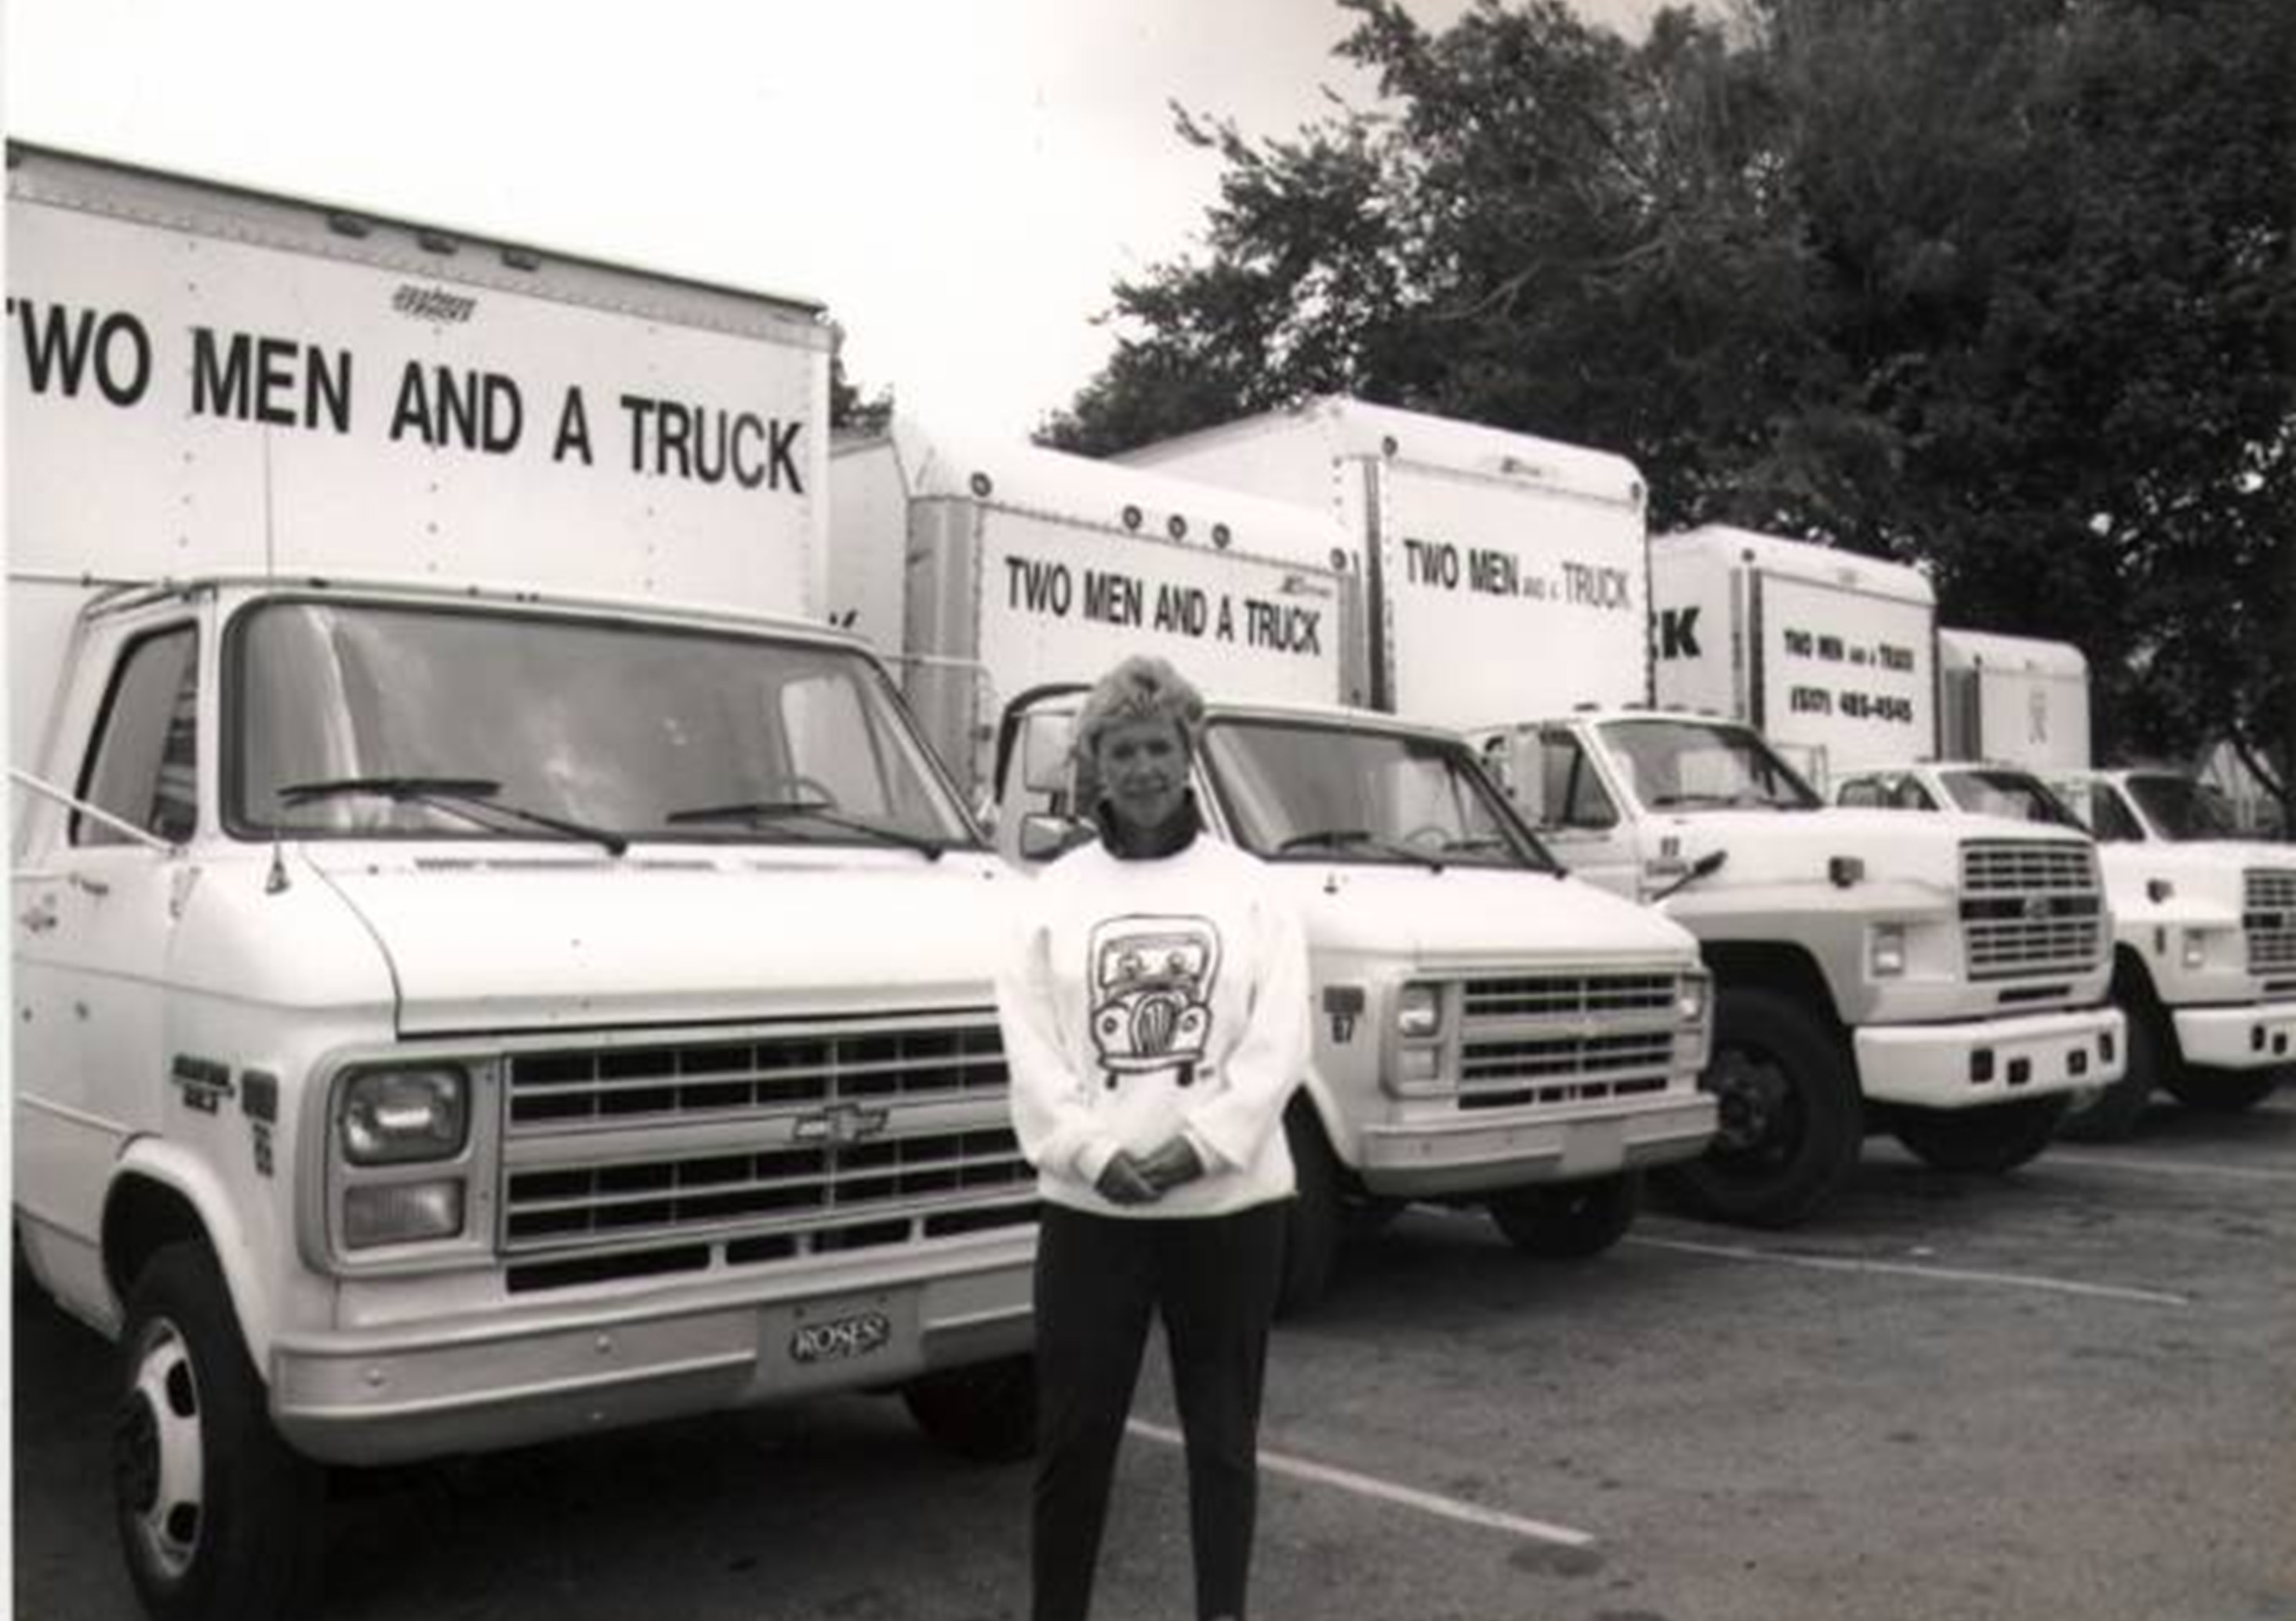 two men and a truck celebrates 429 moving trucks in service